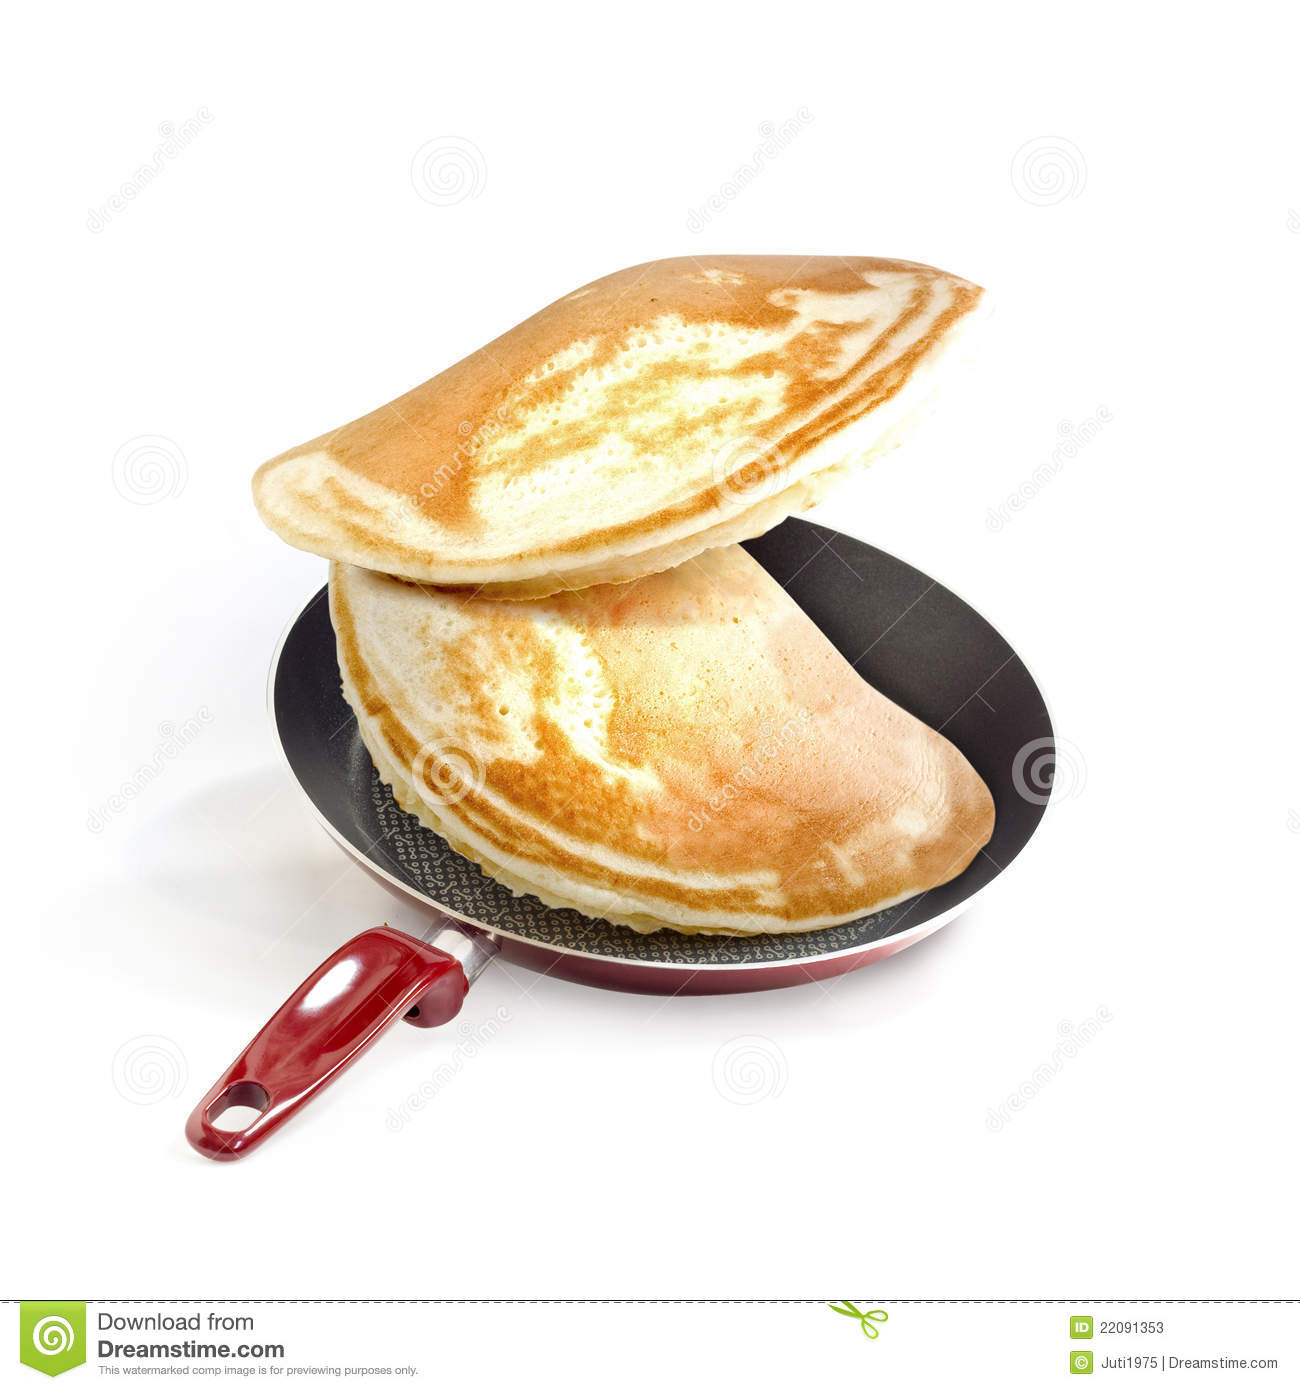 frying pan and pancakes stock image image of food white. Black Bedroom Furniture Sets. Home Design Ideas